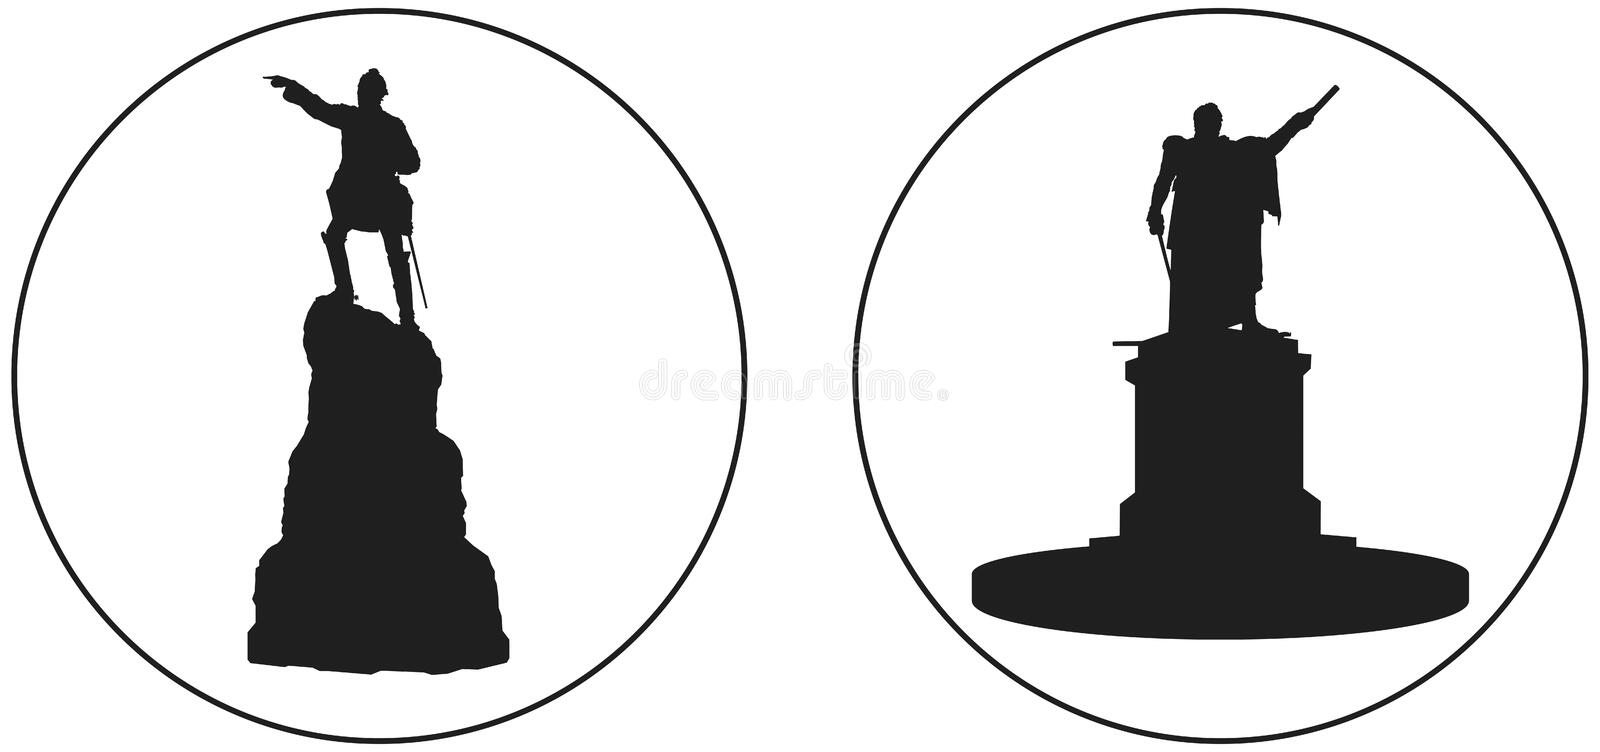 Suvorov and Kutuzov Russian military leader monuments vector icon royalty free stock image